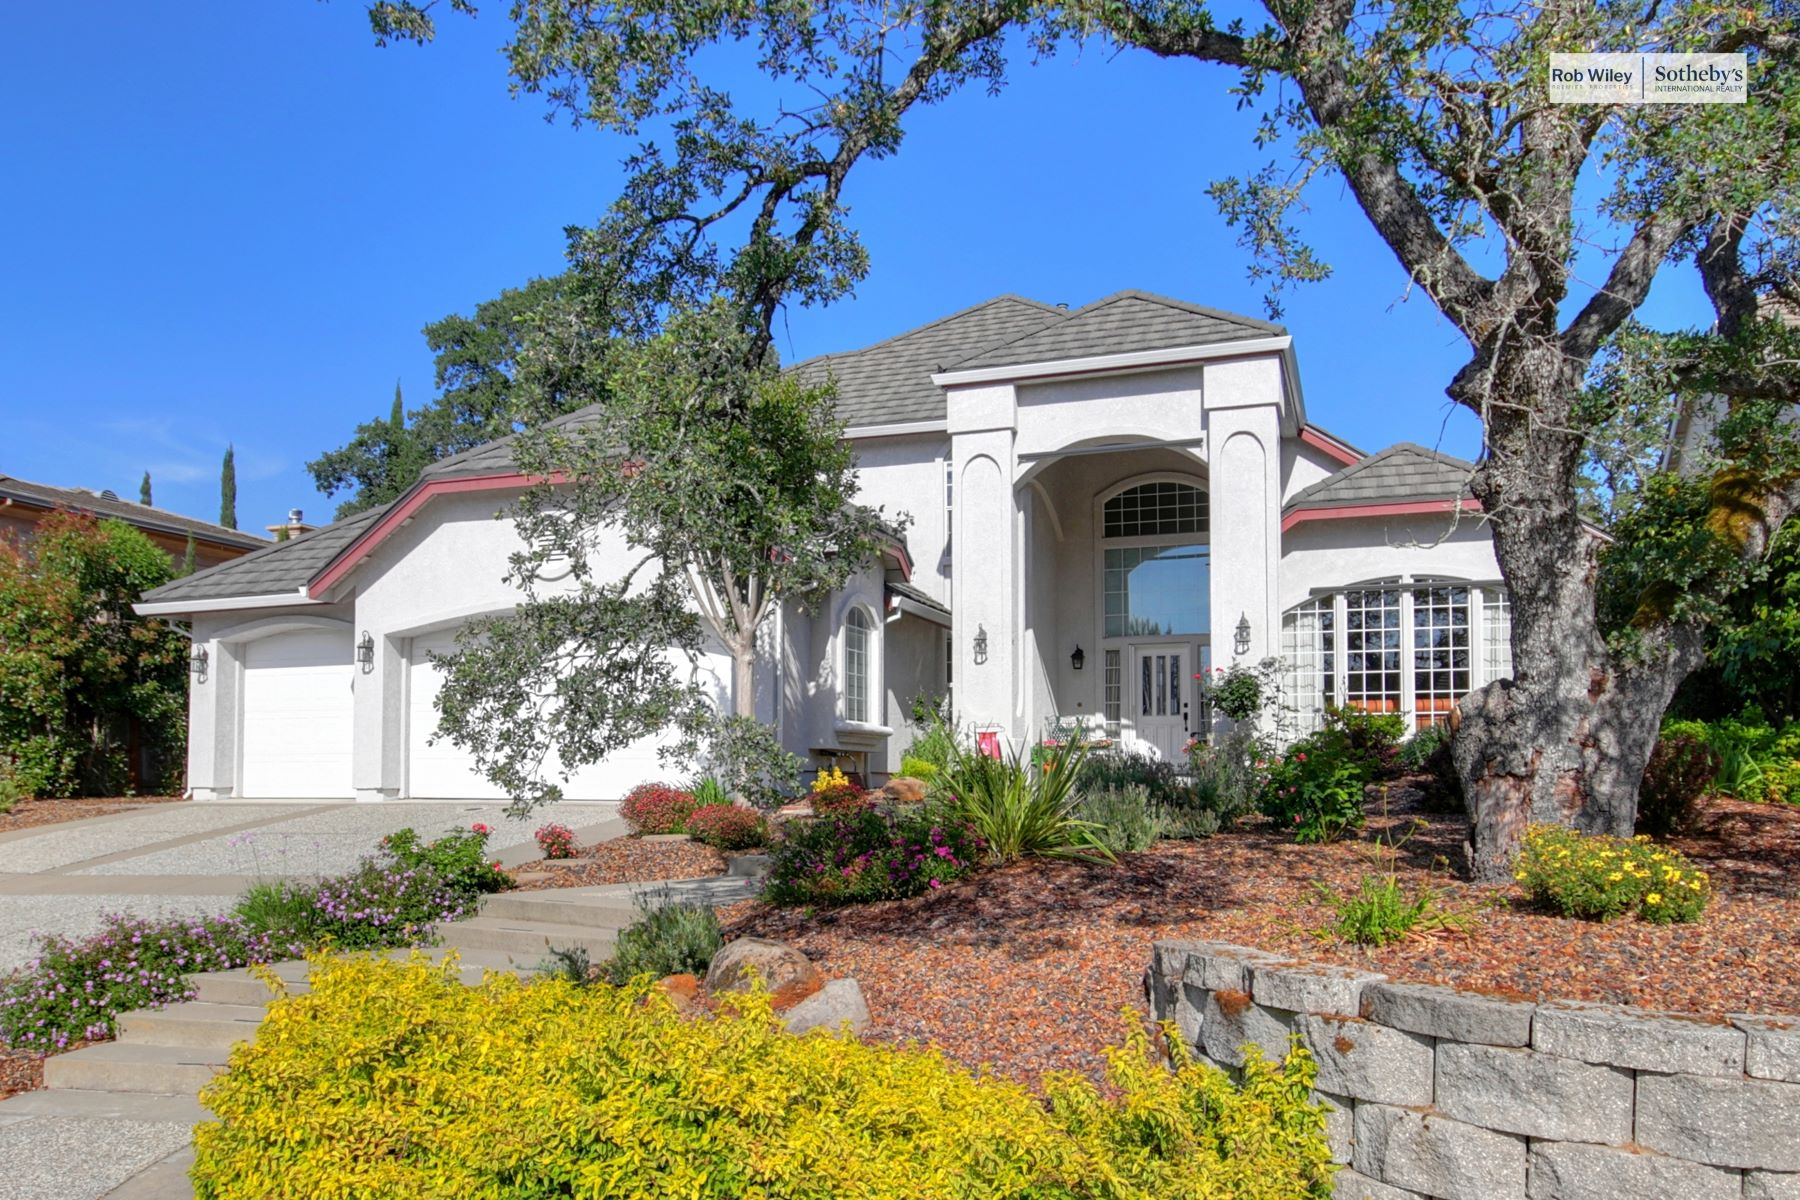 Single Family Homes for Sale at 103 Ash Creek Court, Folsom, CA 95630 103 Ash Creek Court Folsom, California 95630 United States